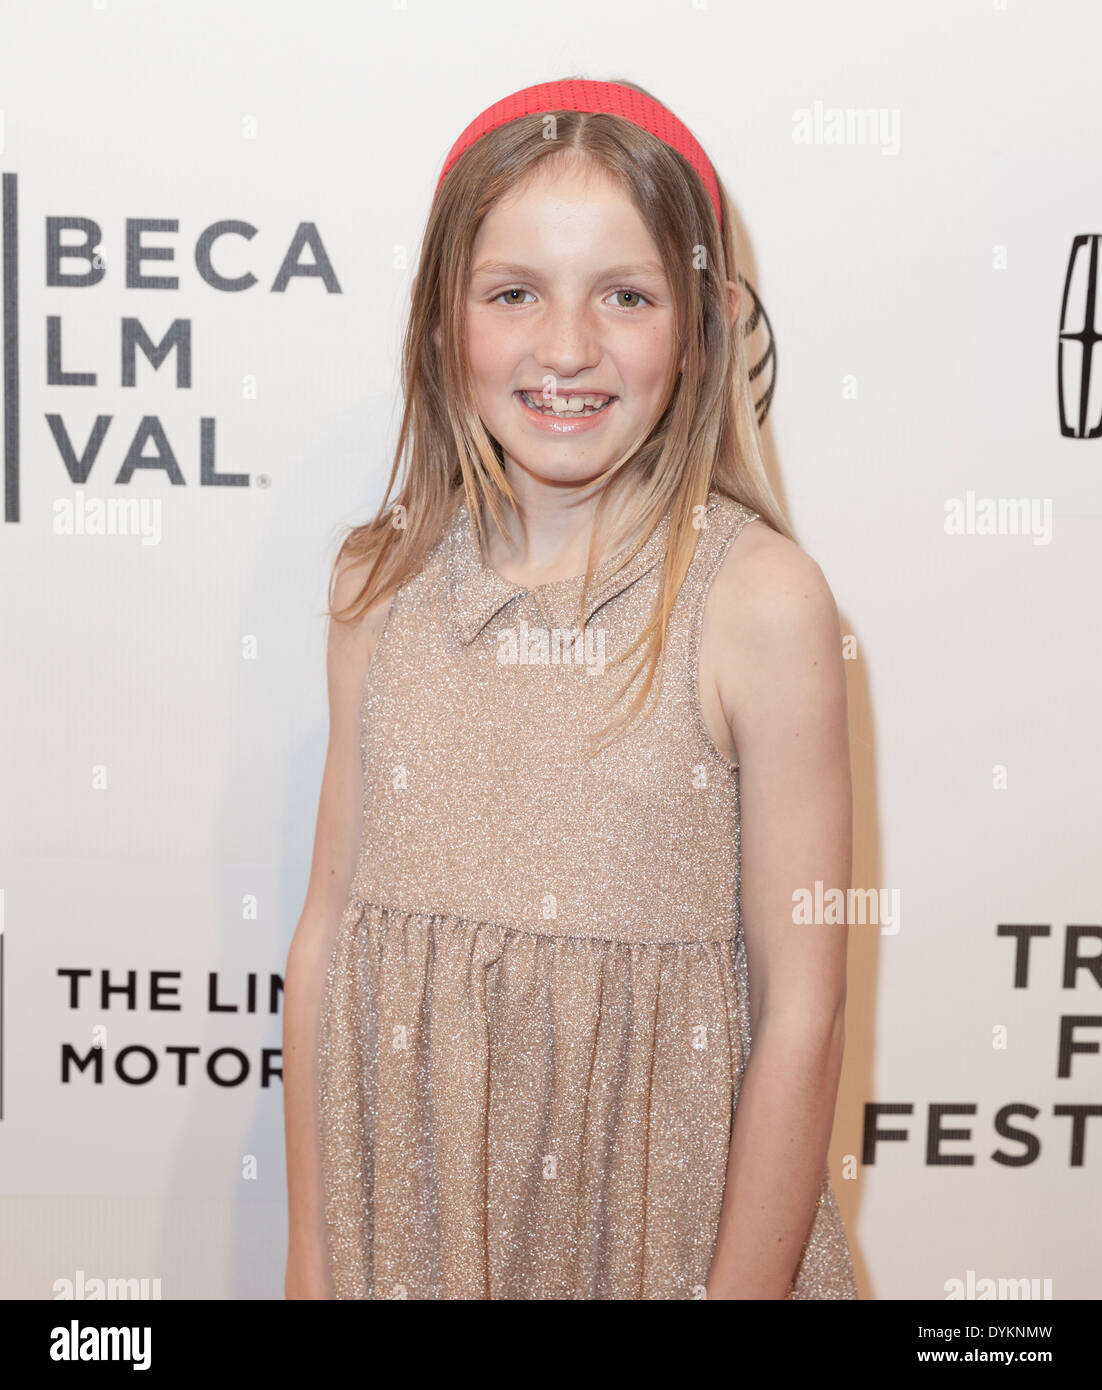 NEW YORK, NY - APRIL 20, 2014: Eva Grace Kellner attends premiere Every Secret Thing movie during 2014 Tribeca Film Festival - Stock Image